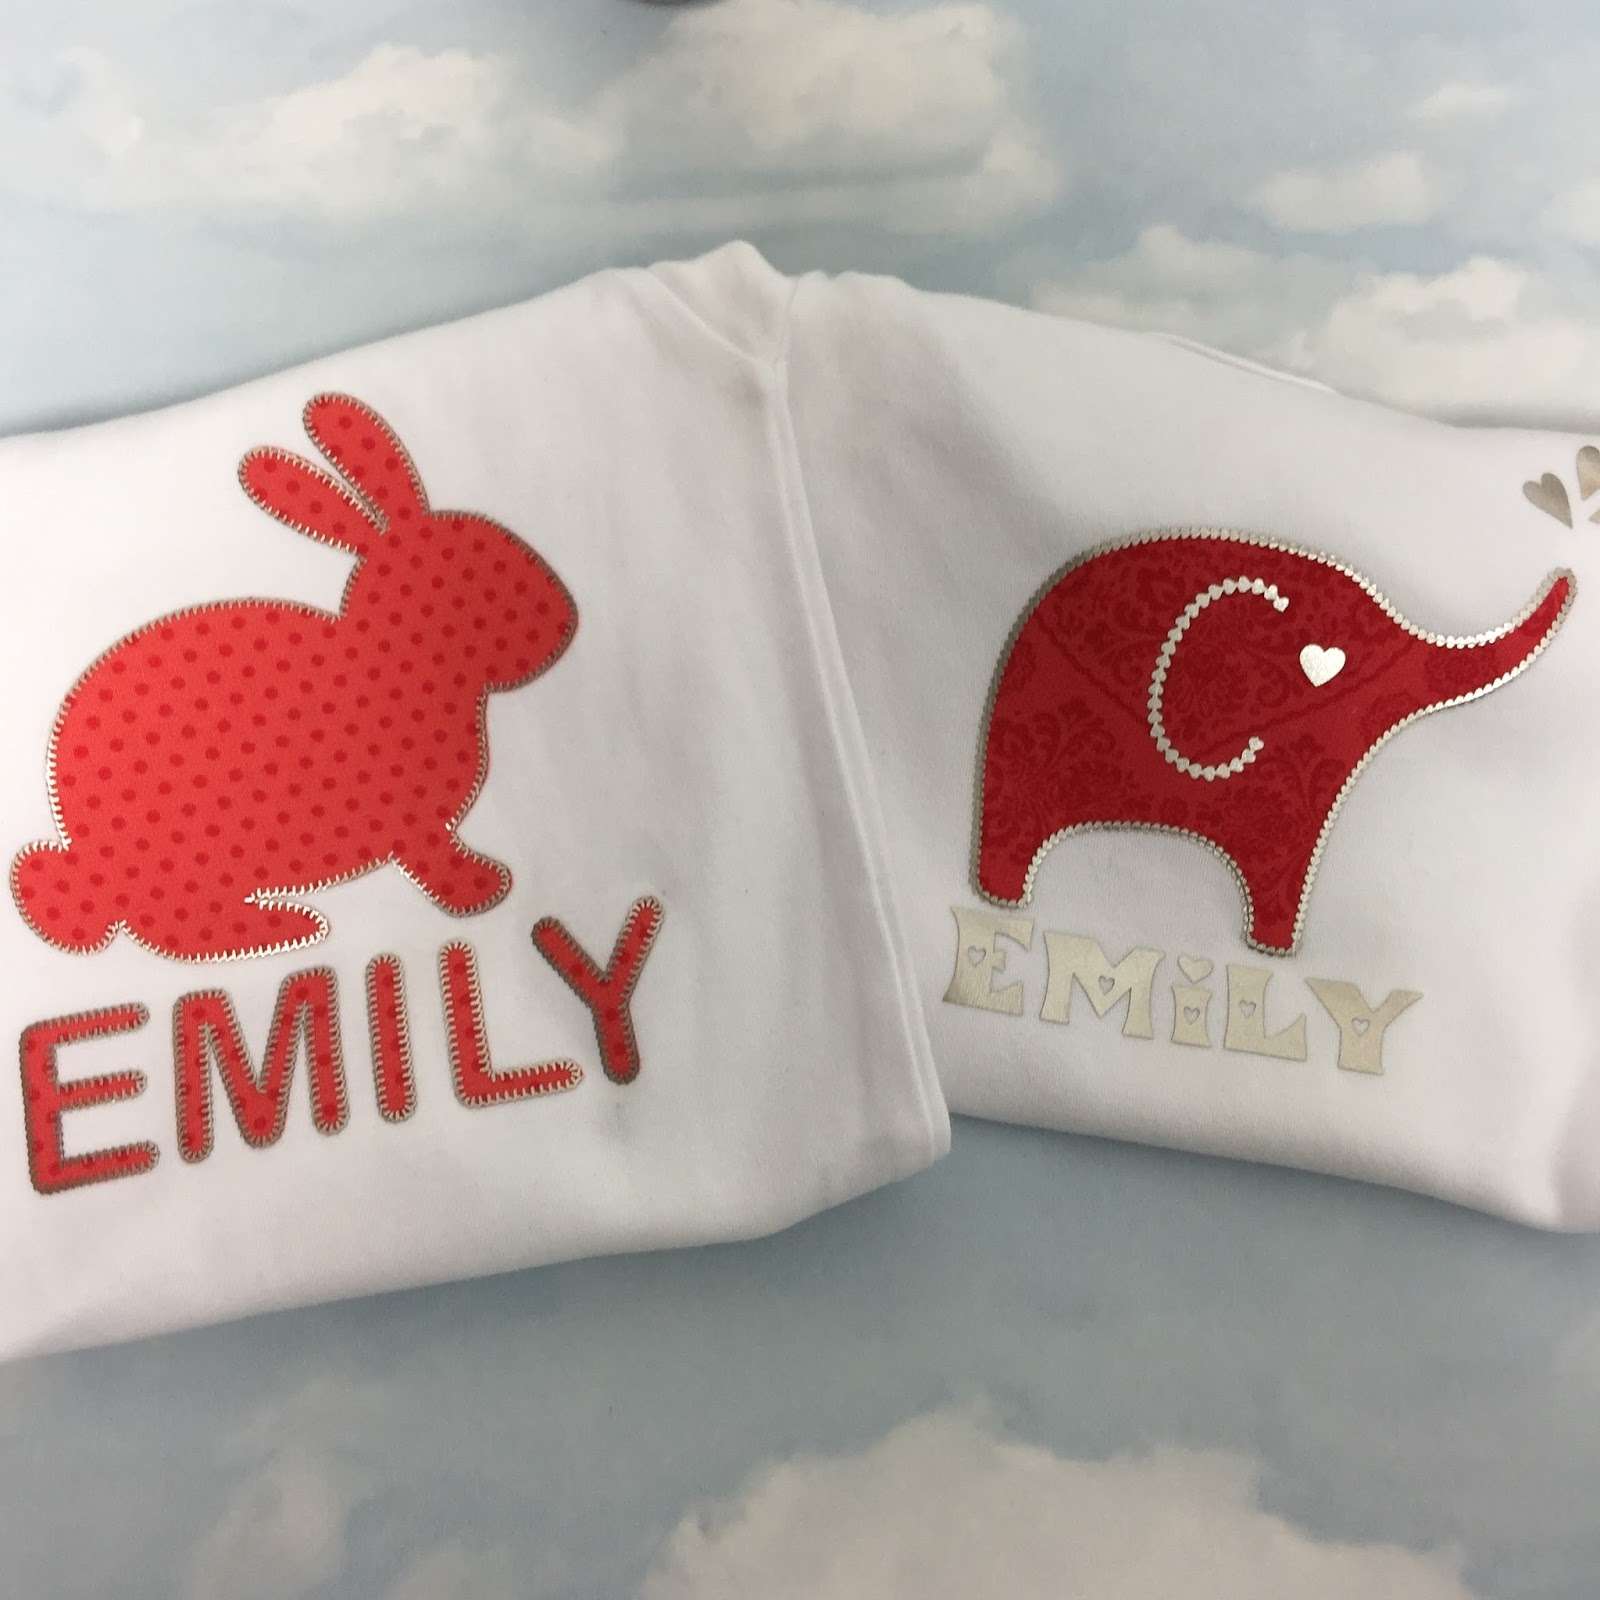 Silhouette UK: No Sew Appliqué with HTV Embroidery Stitching